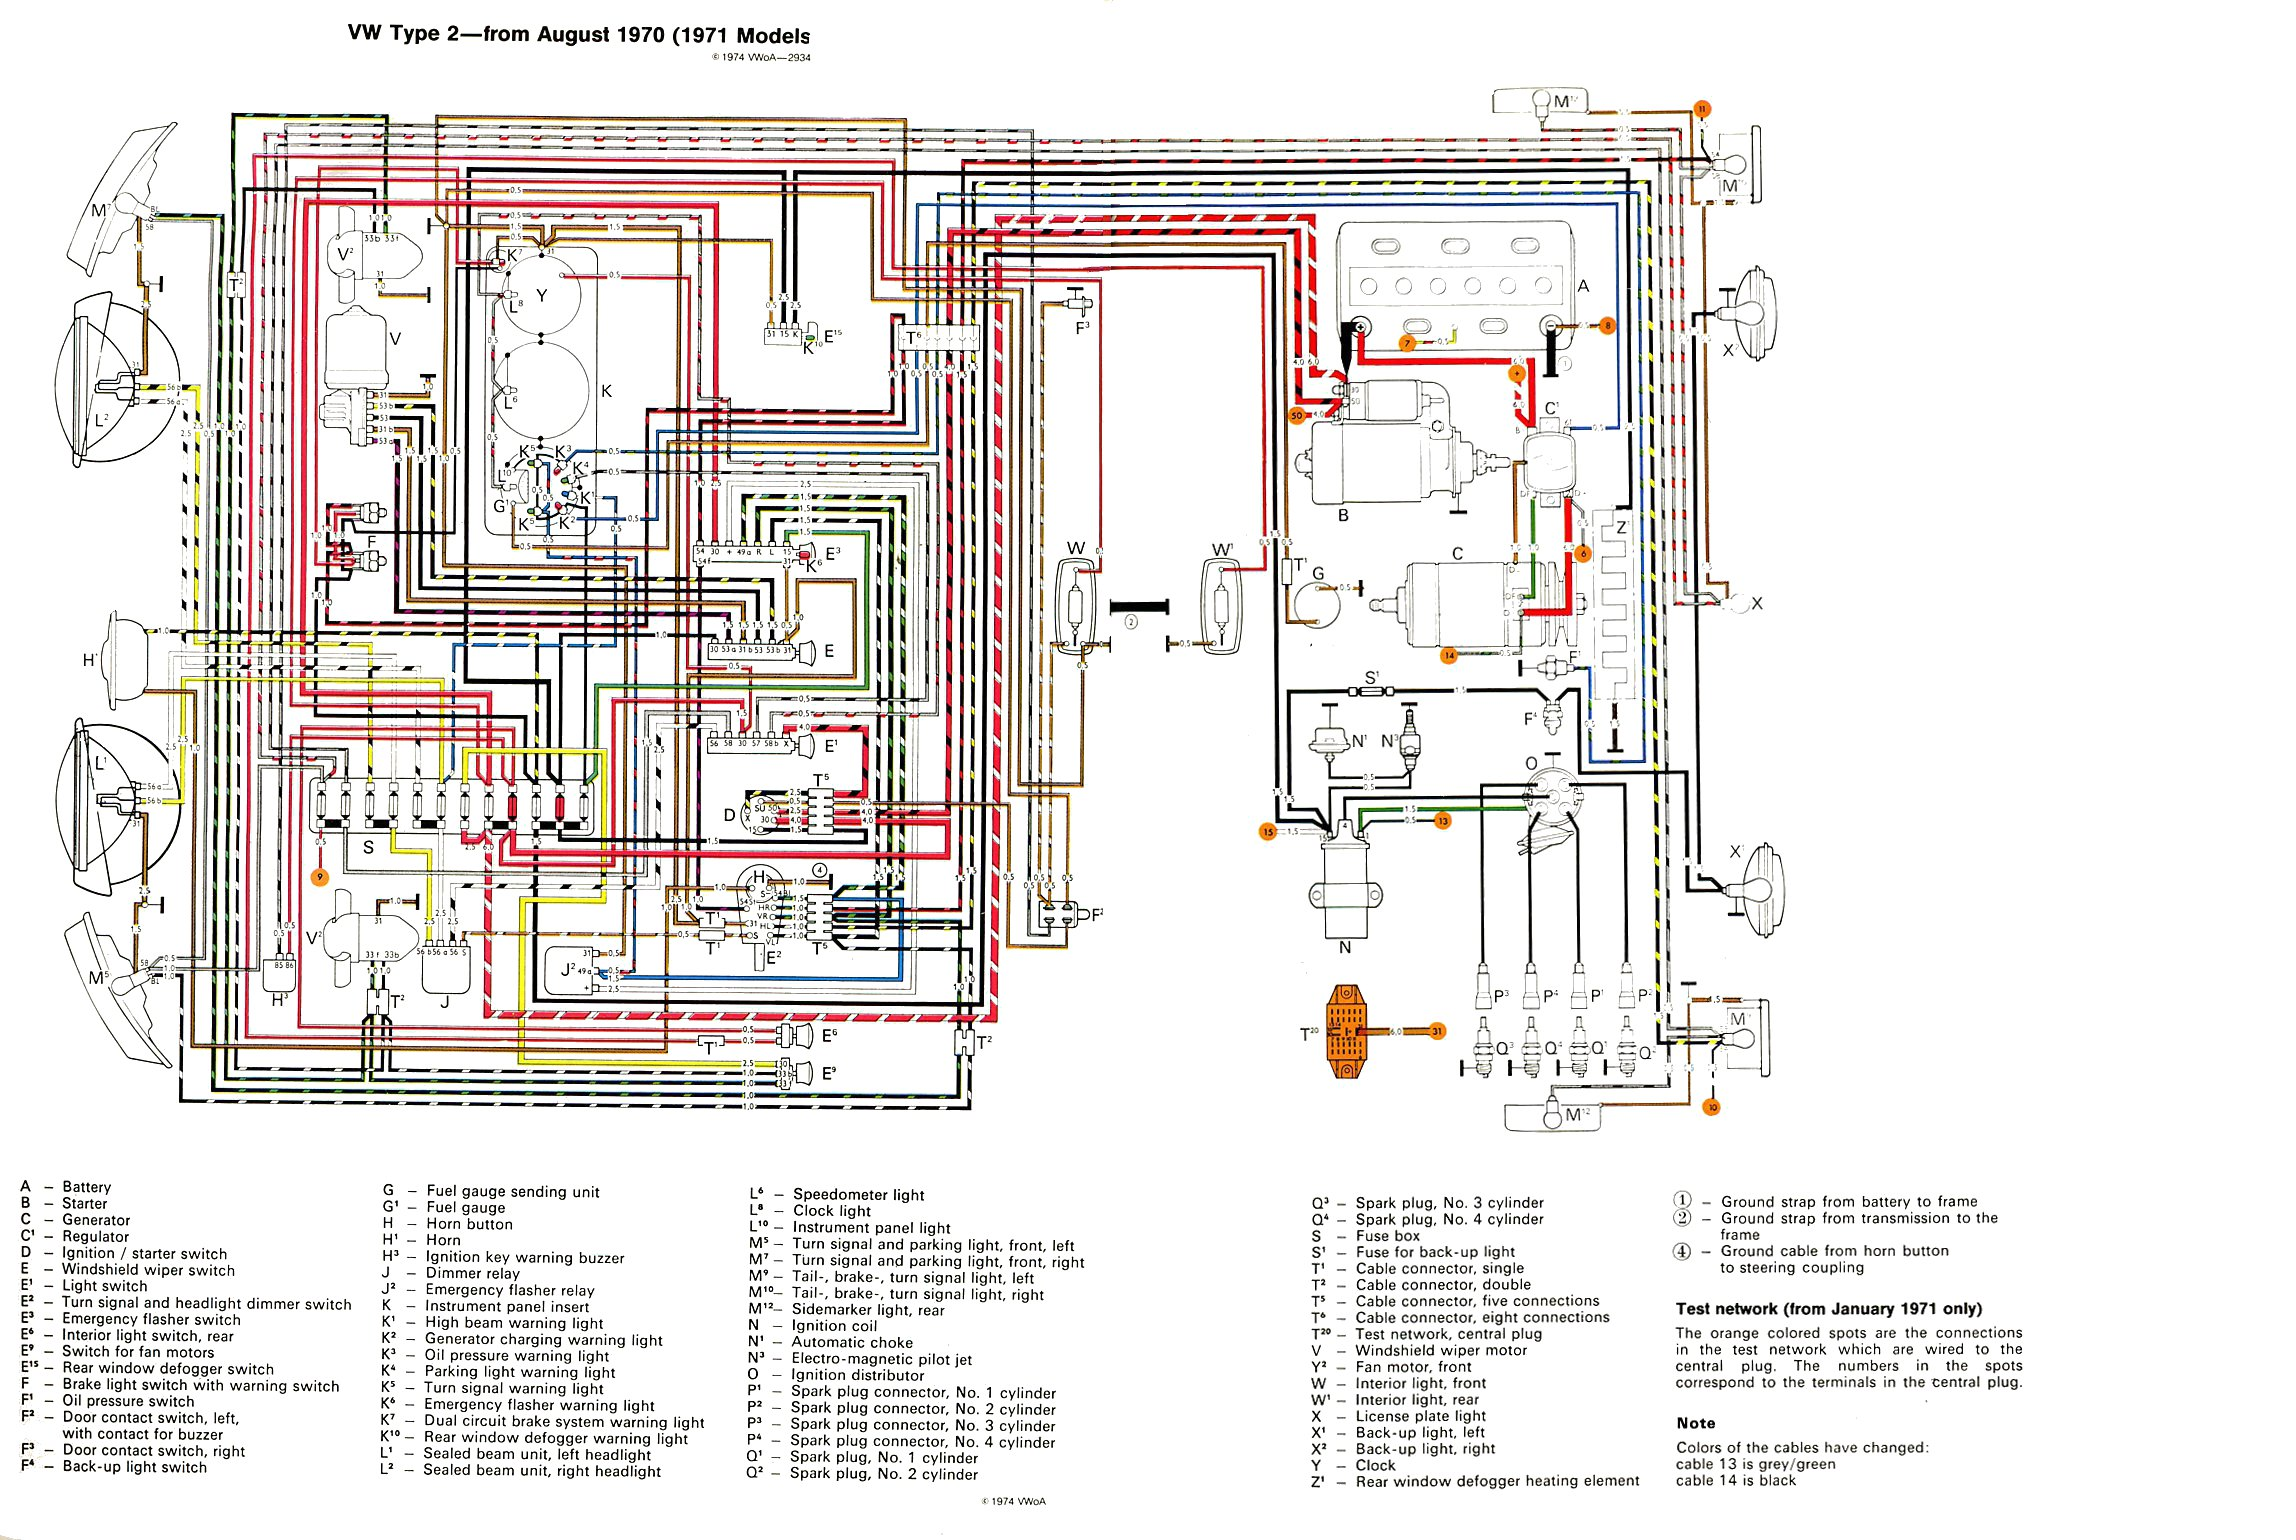 Turn Signal Switch Wiring Diagram For 1990 Dodge Truck With Wiper Honda 125 For1987 Cdi Box Thesamba Com Type 2 Diagramsturn